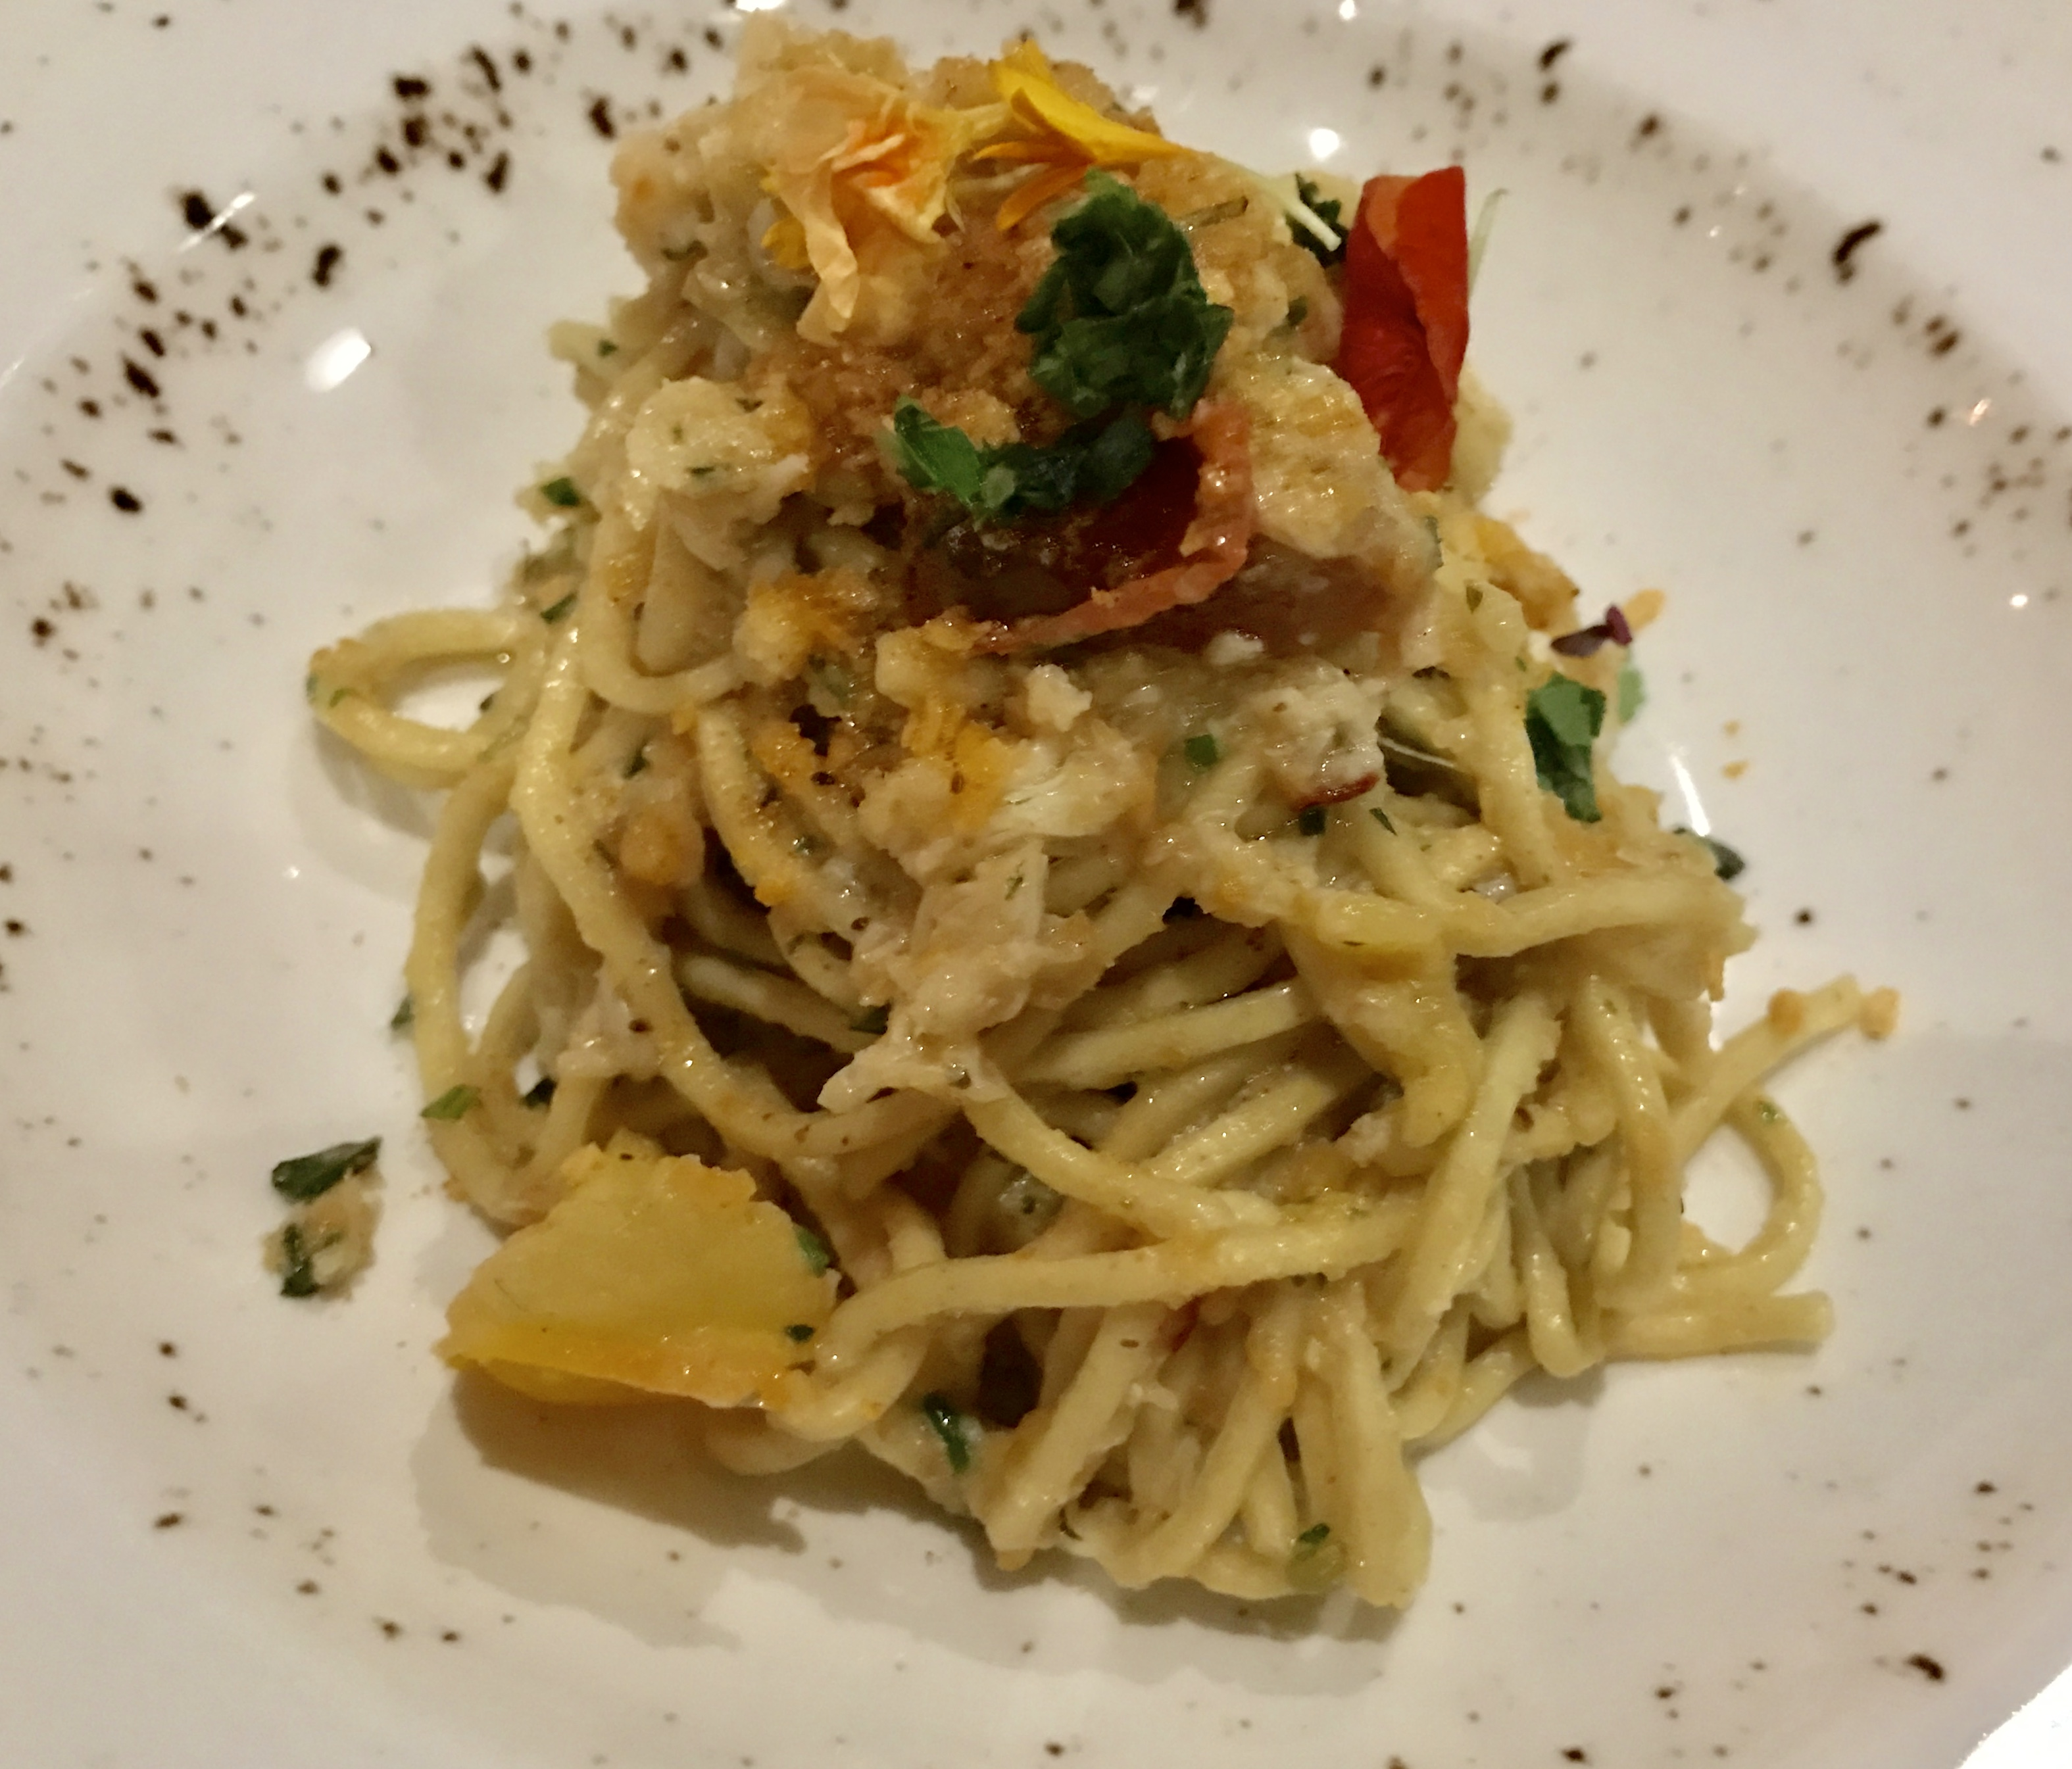 Stillwaters Tavern - Maryland Style Blue Crab Spaghetti